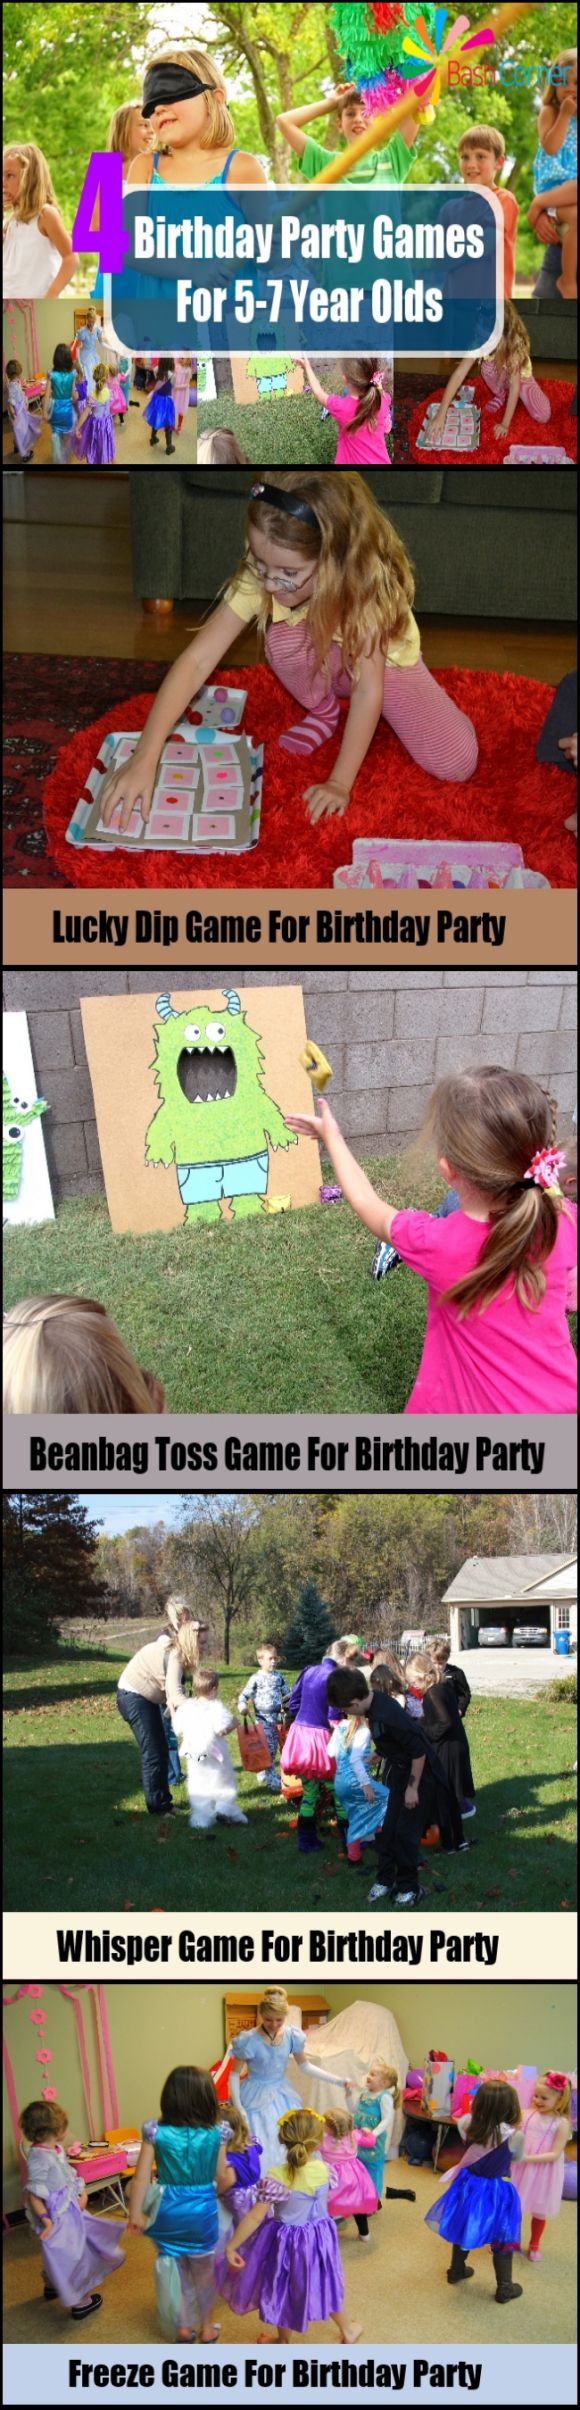 best 25 6 year old ideas on pinterest 5 year old activities year 6 and 4 year old girl